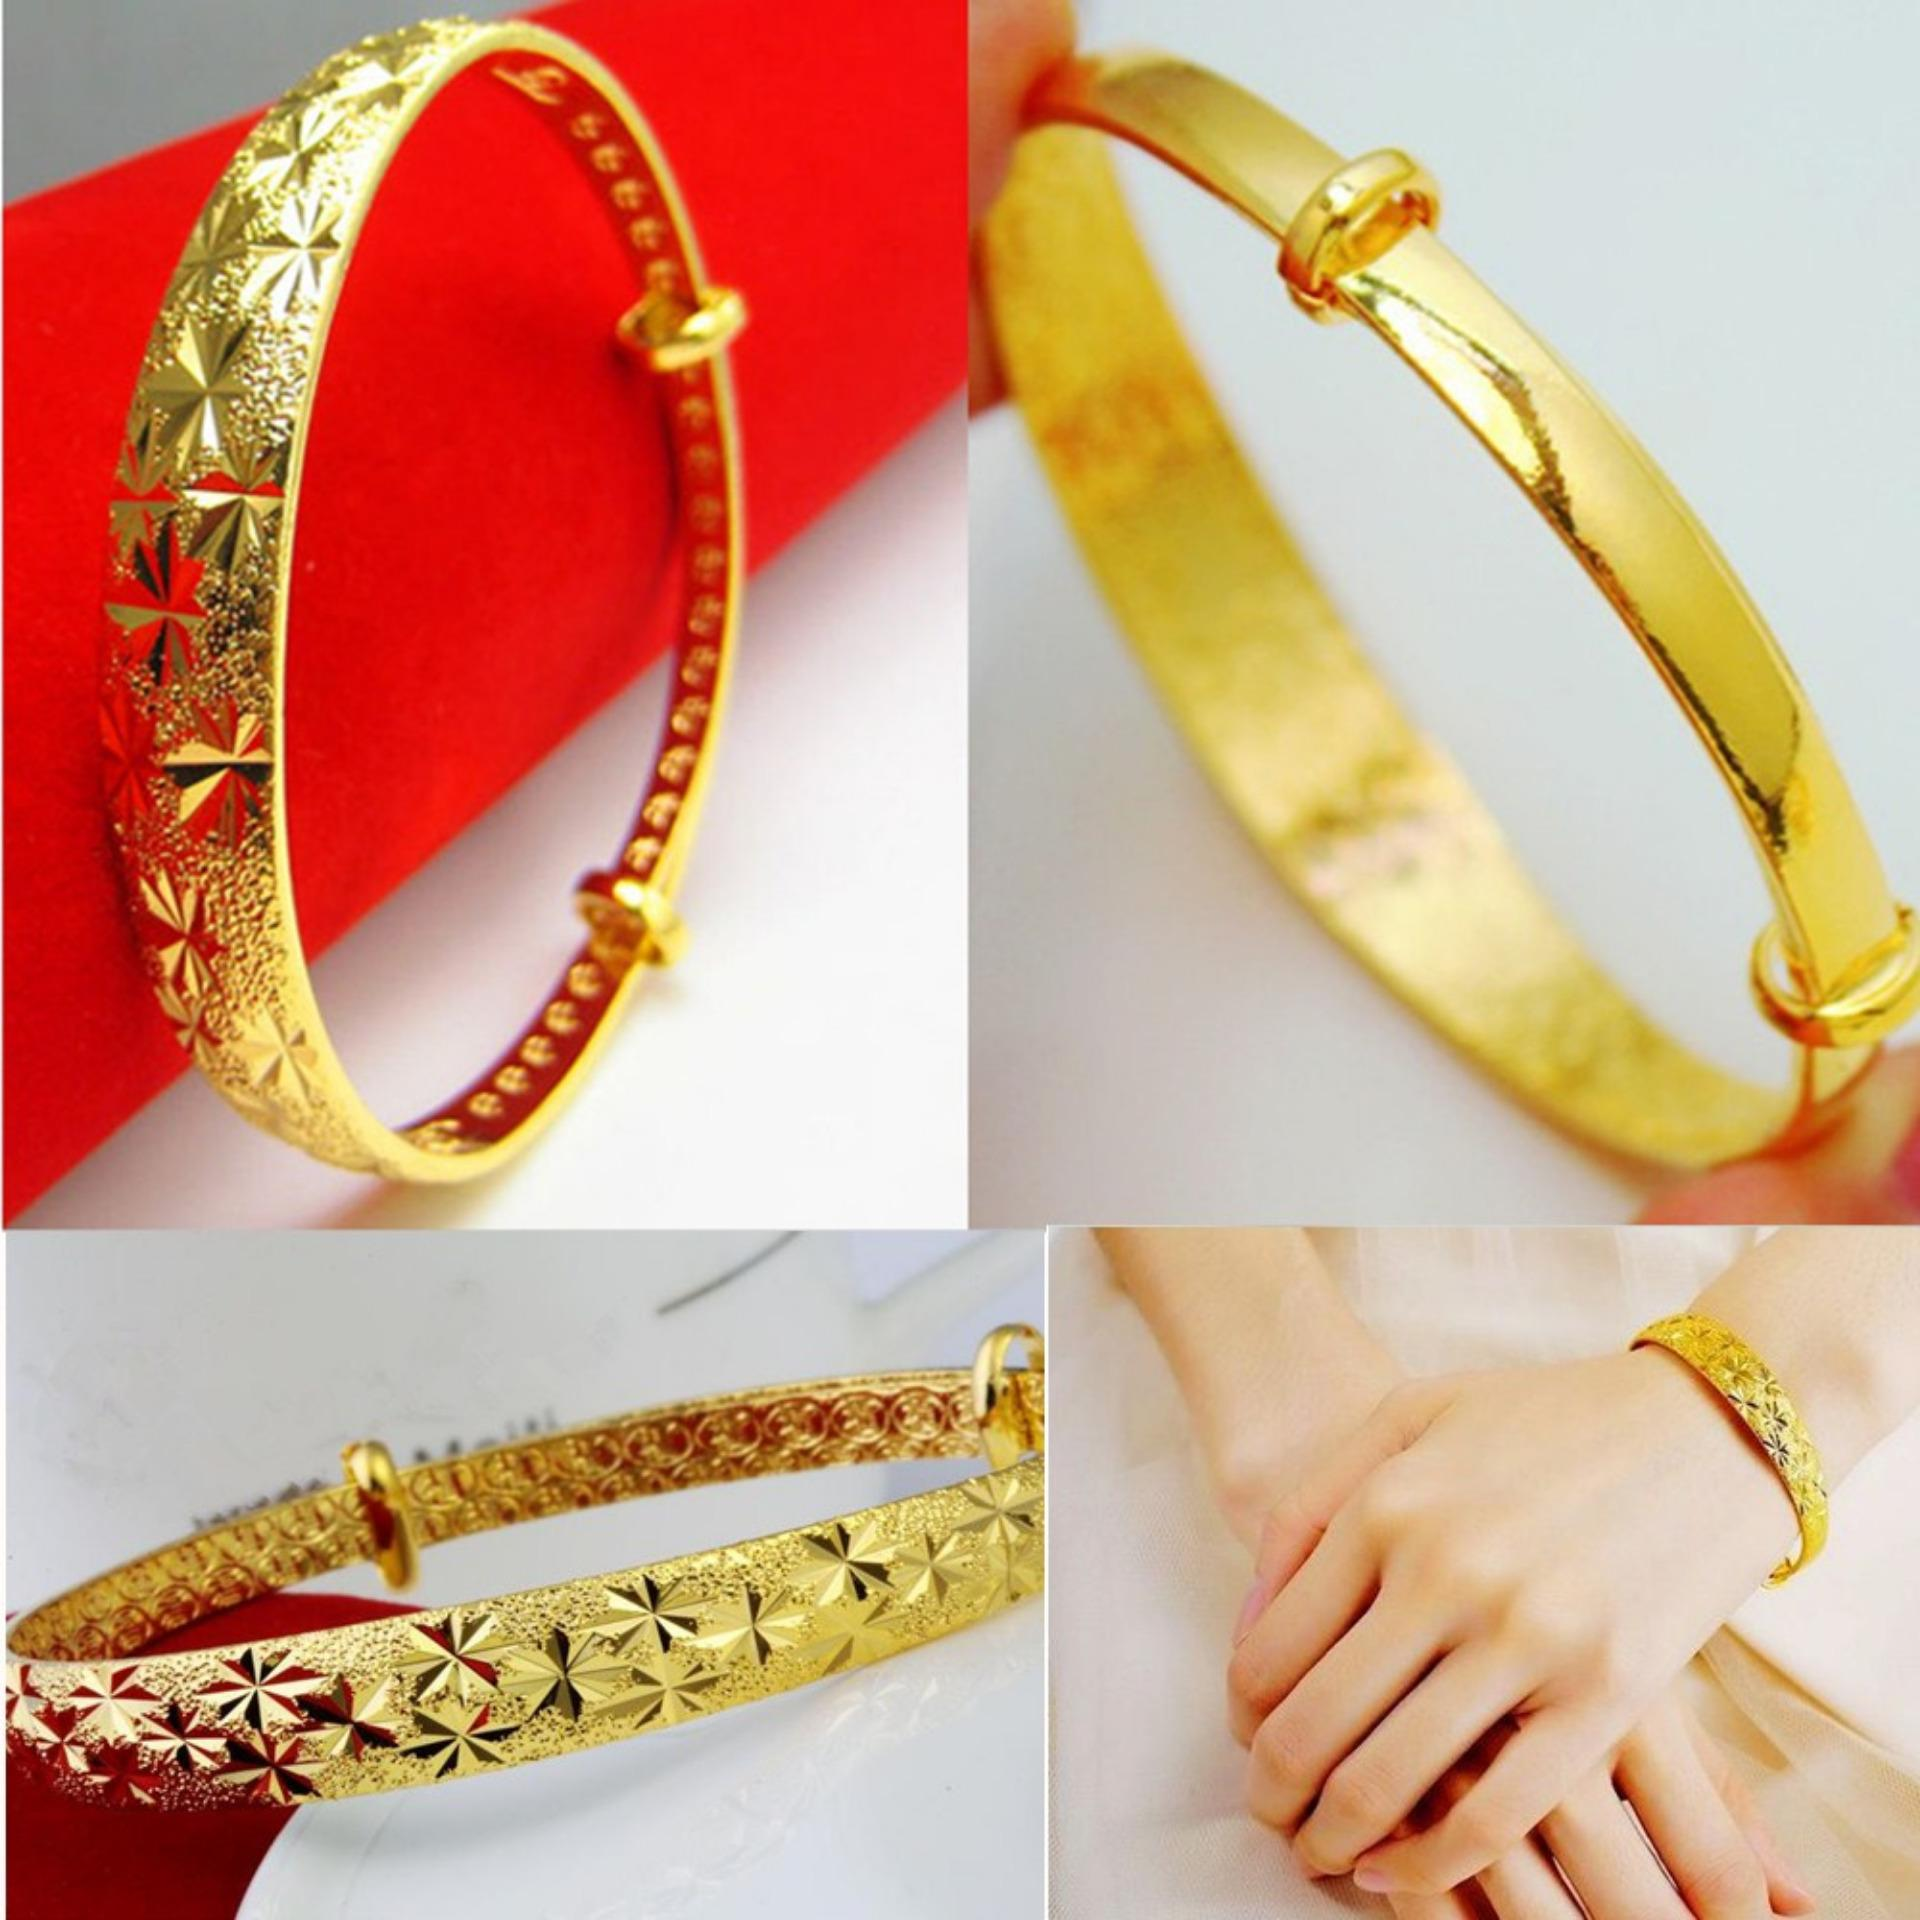 LIFEART Lady s Wedding Jewelry Premium 24K Gold Woman HandcraftAdjustable Bangle &